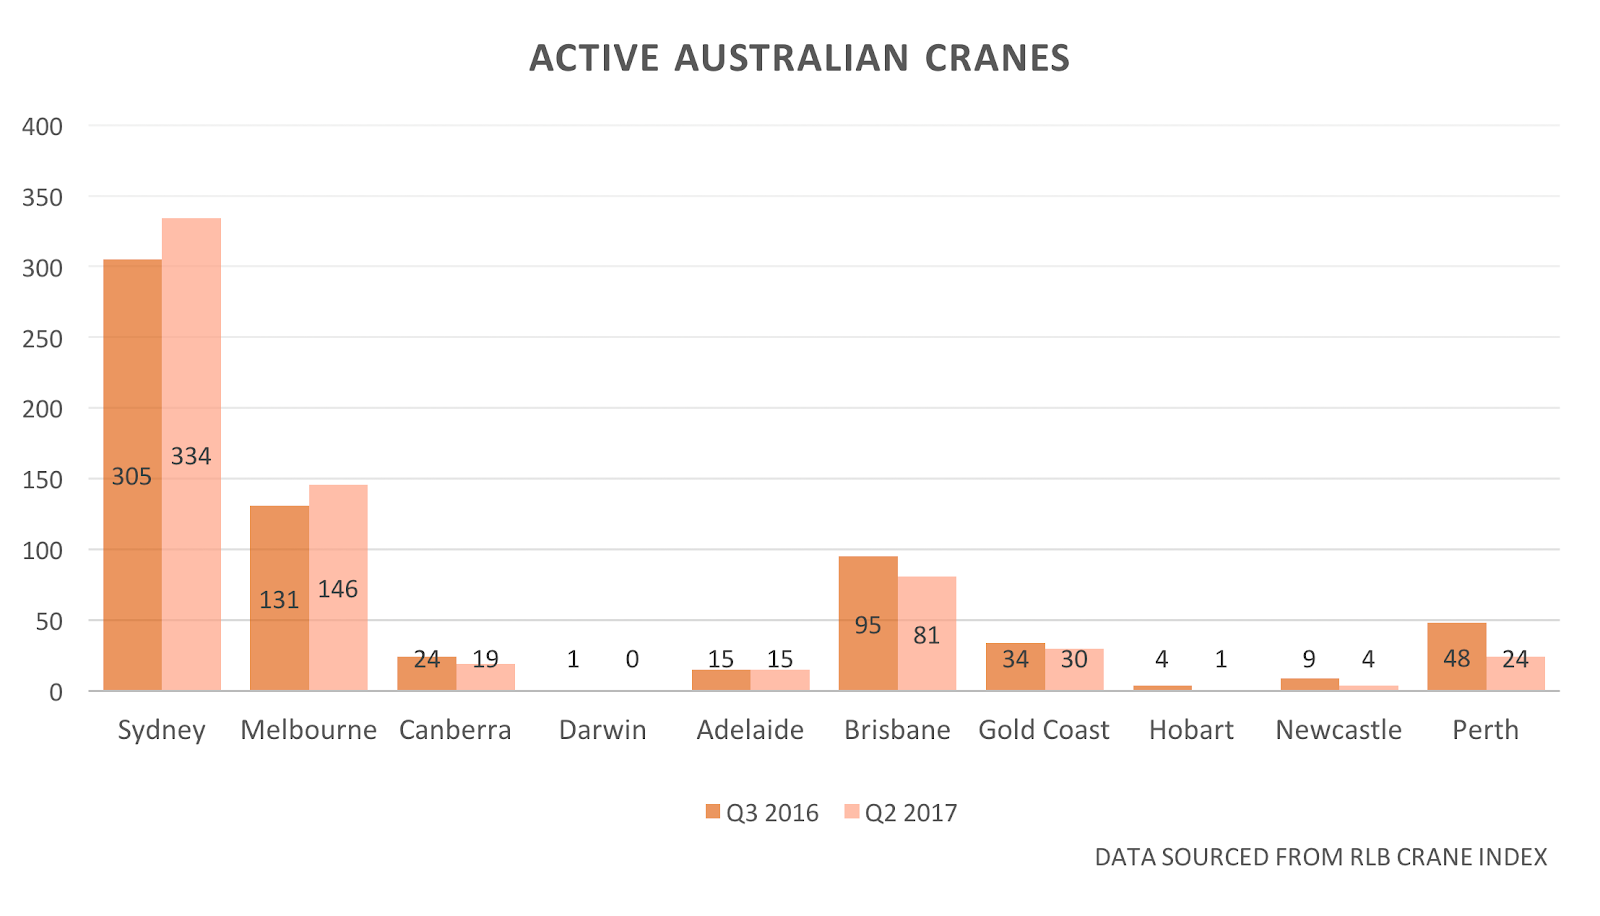 a decrease in large scale projects and financing along with an increase in competition has driven a decline in active australian cranes for the first time